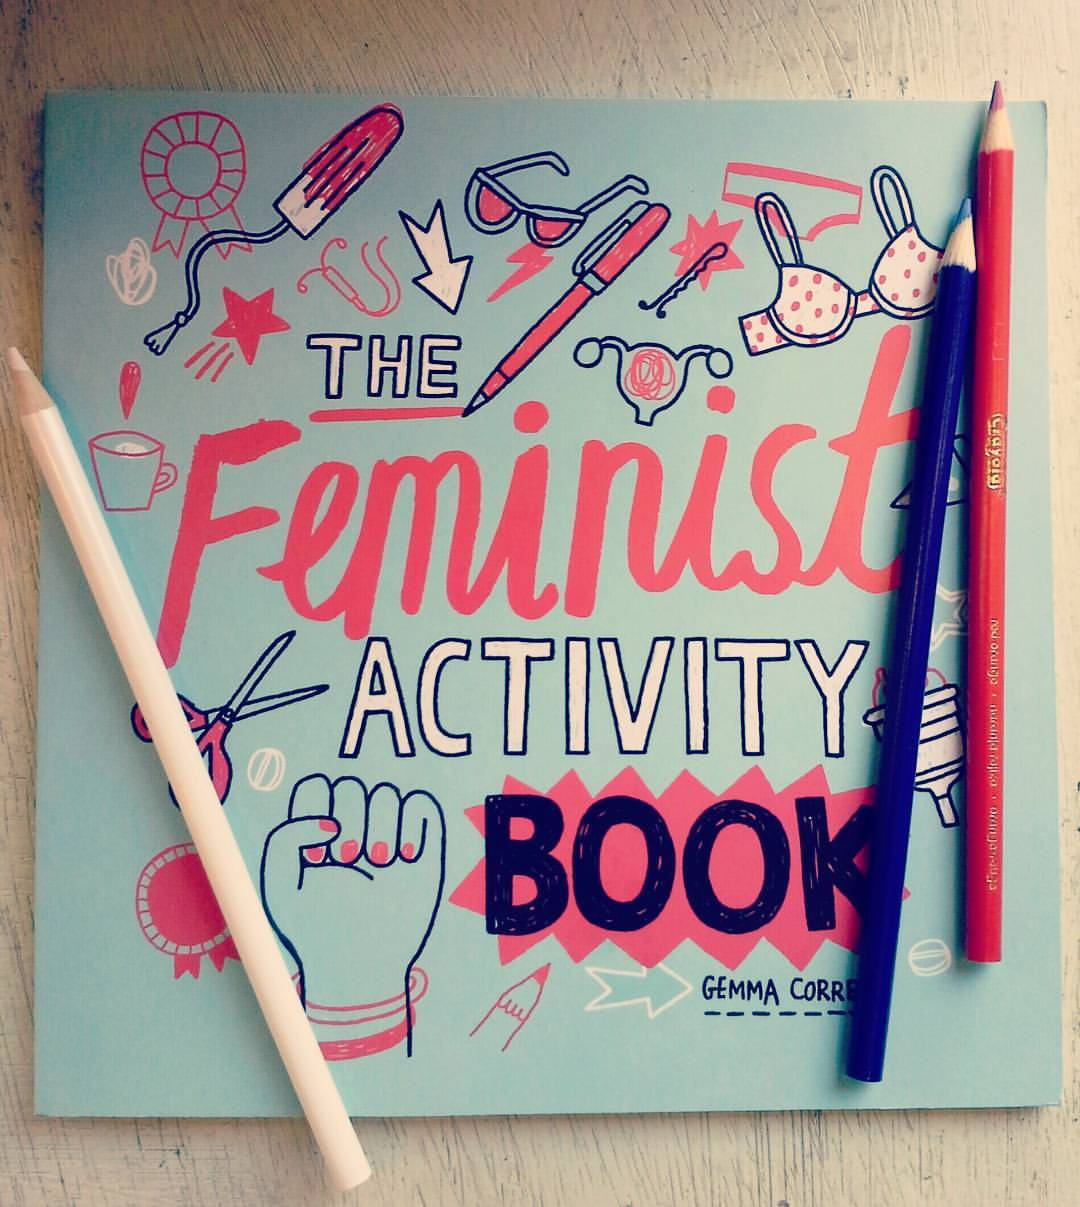 Culture Music Bluestockings Bookstore Feminist Activity Book